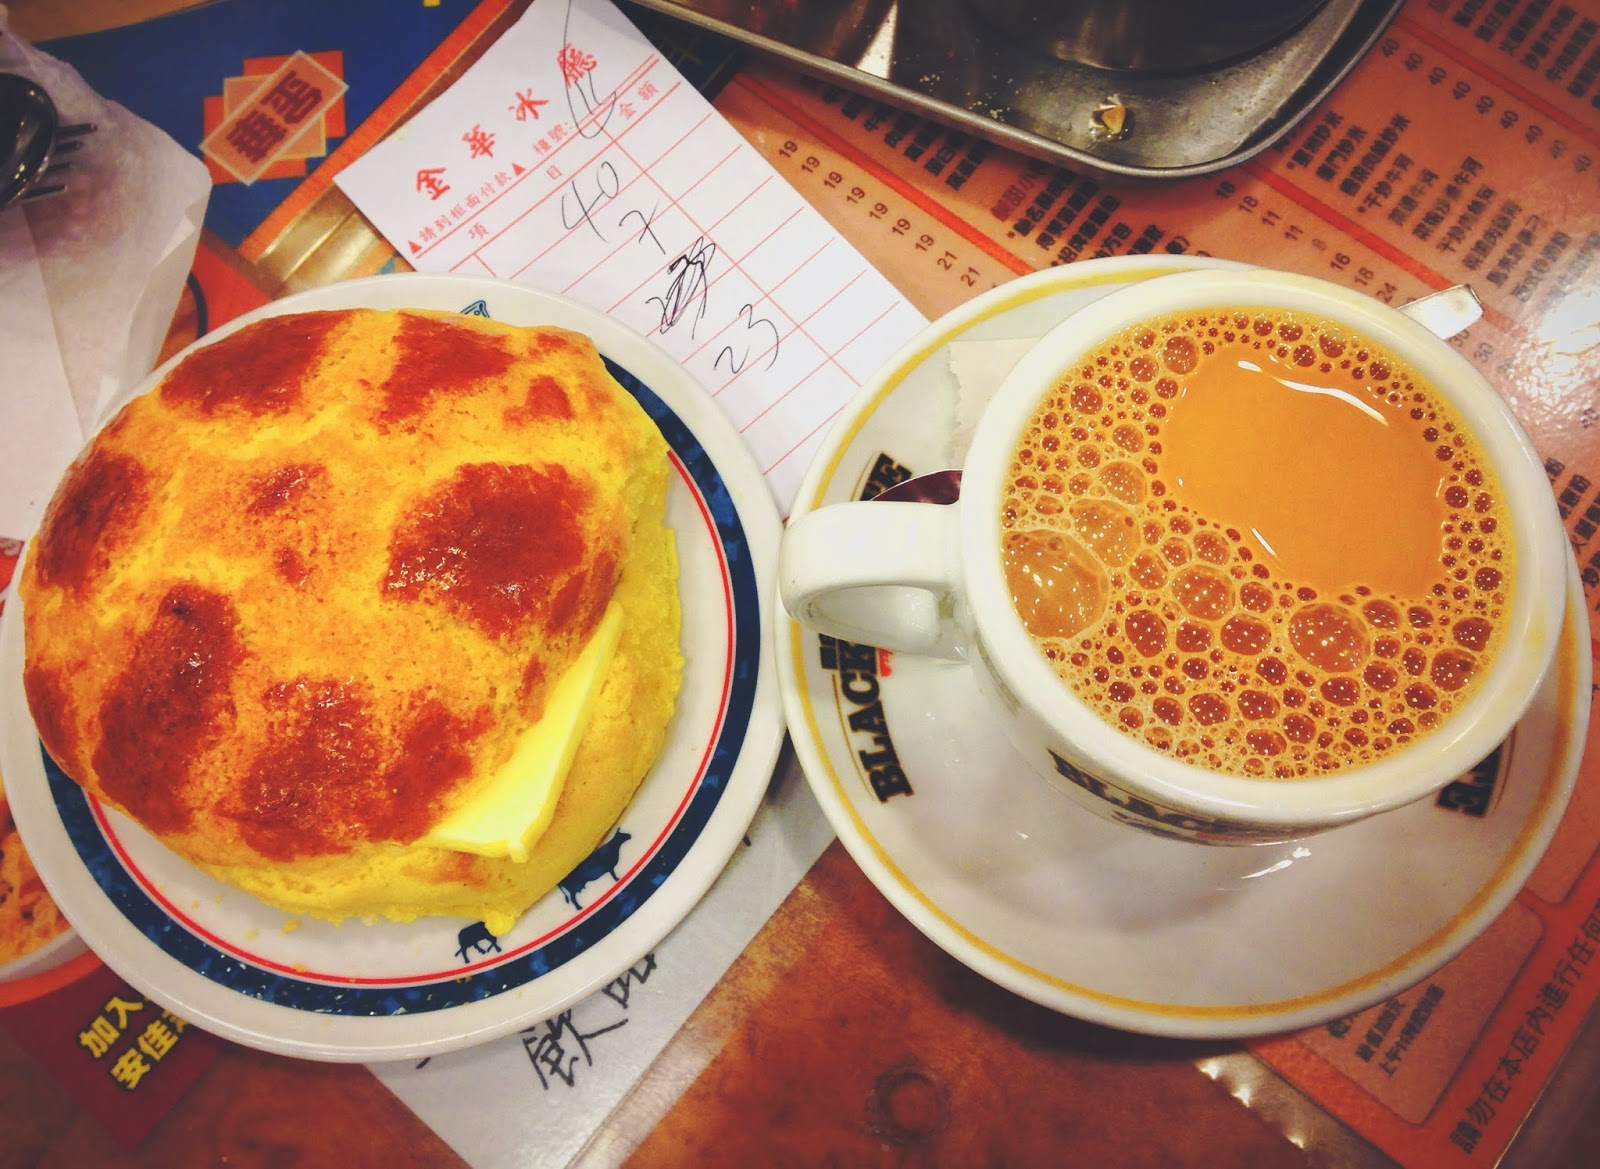 Kum Wah Cafe Hong Kong Polo Bun and Milk Tea